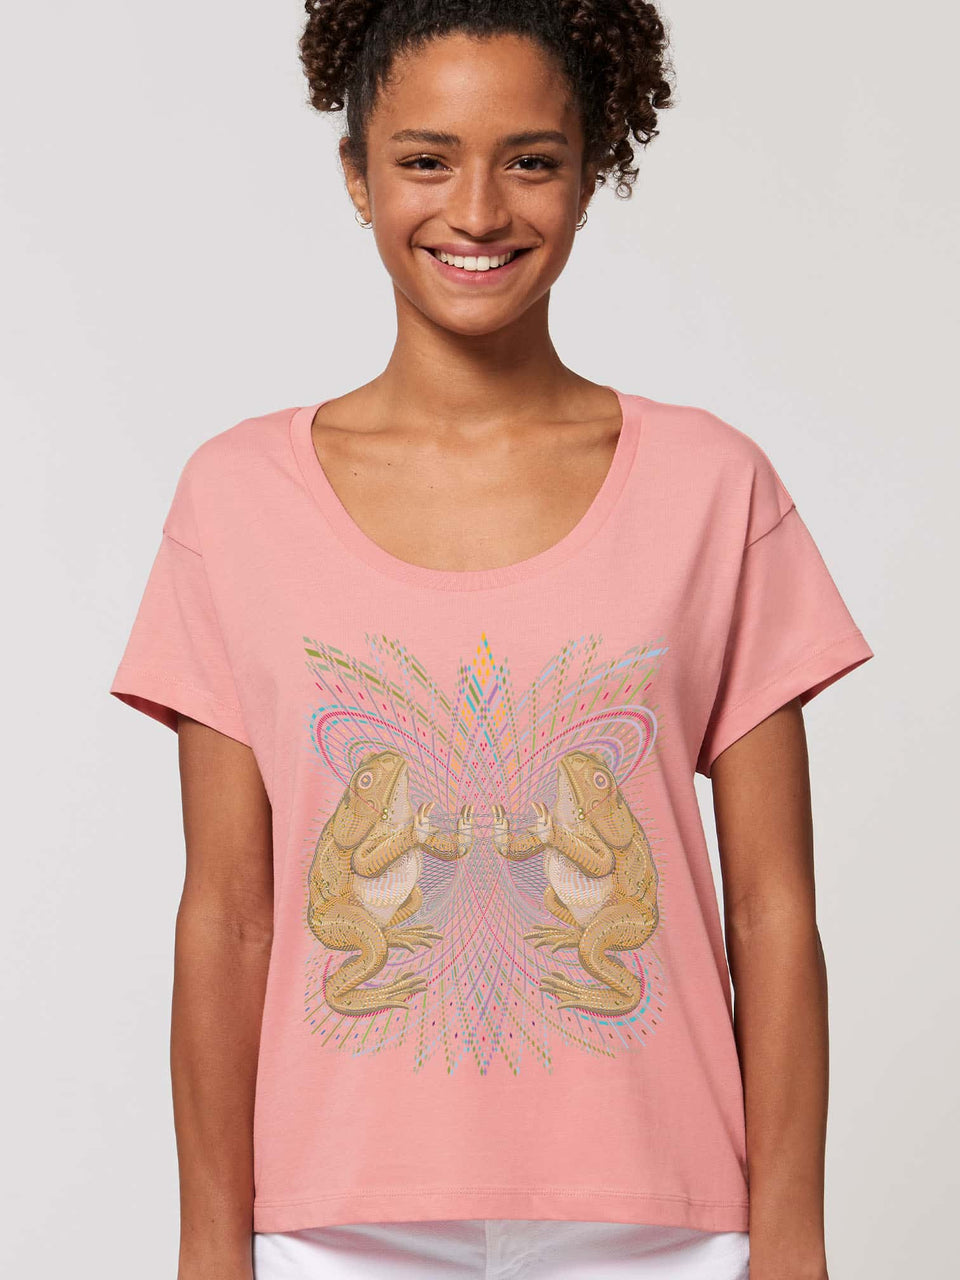 Bufo Alvarius Made To Order Women T-Shirt - Canyon Pink